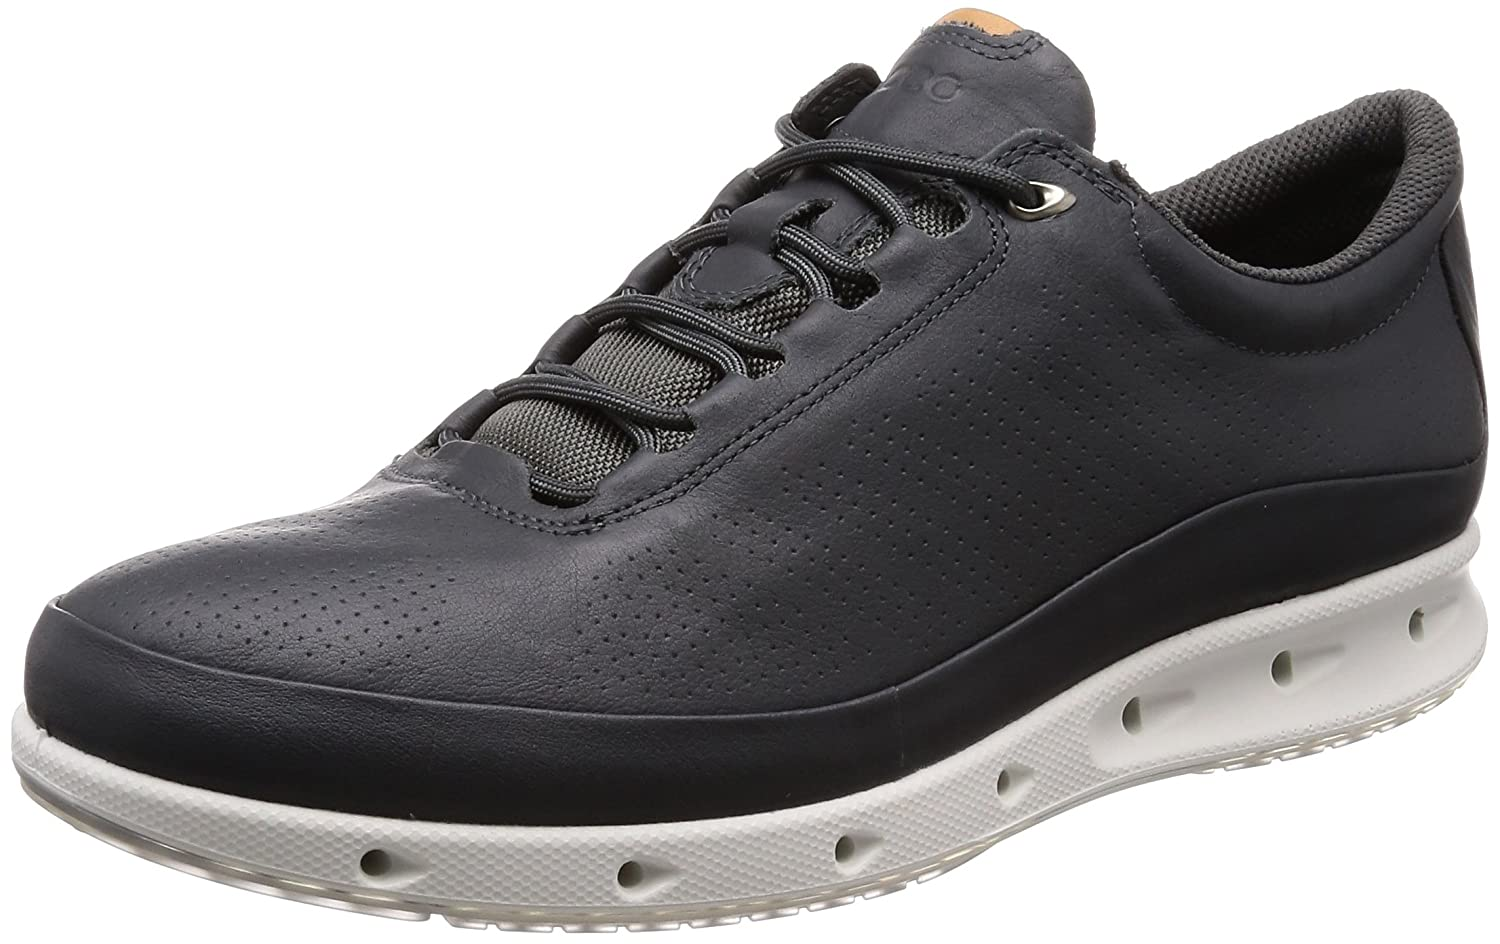 [エコー] スニーカー ECCO COOL 831304 B0793GS8R7 28.5 cm|Dark Shadow Dark Shadow 28.5 cm